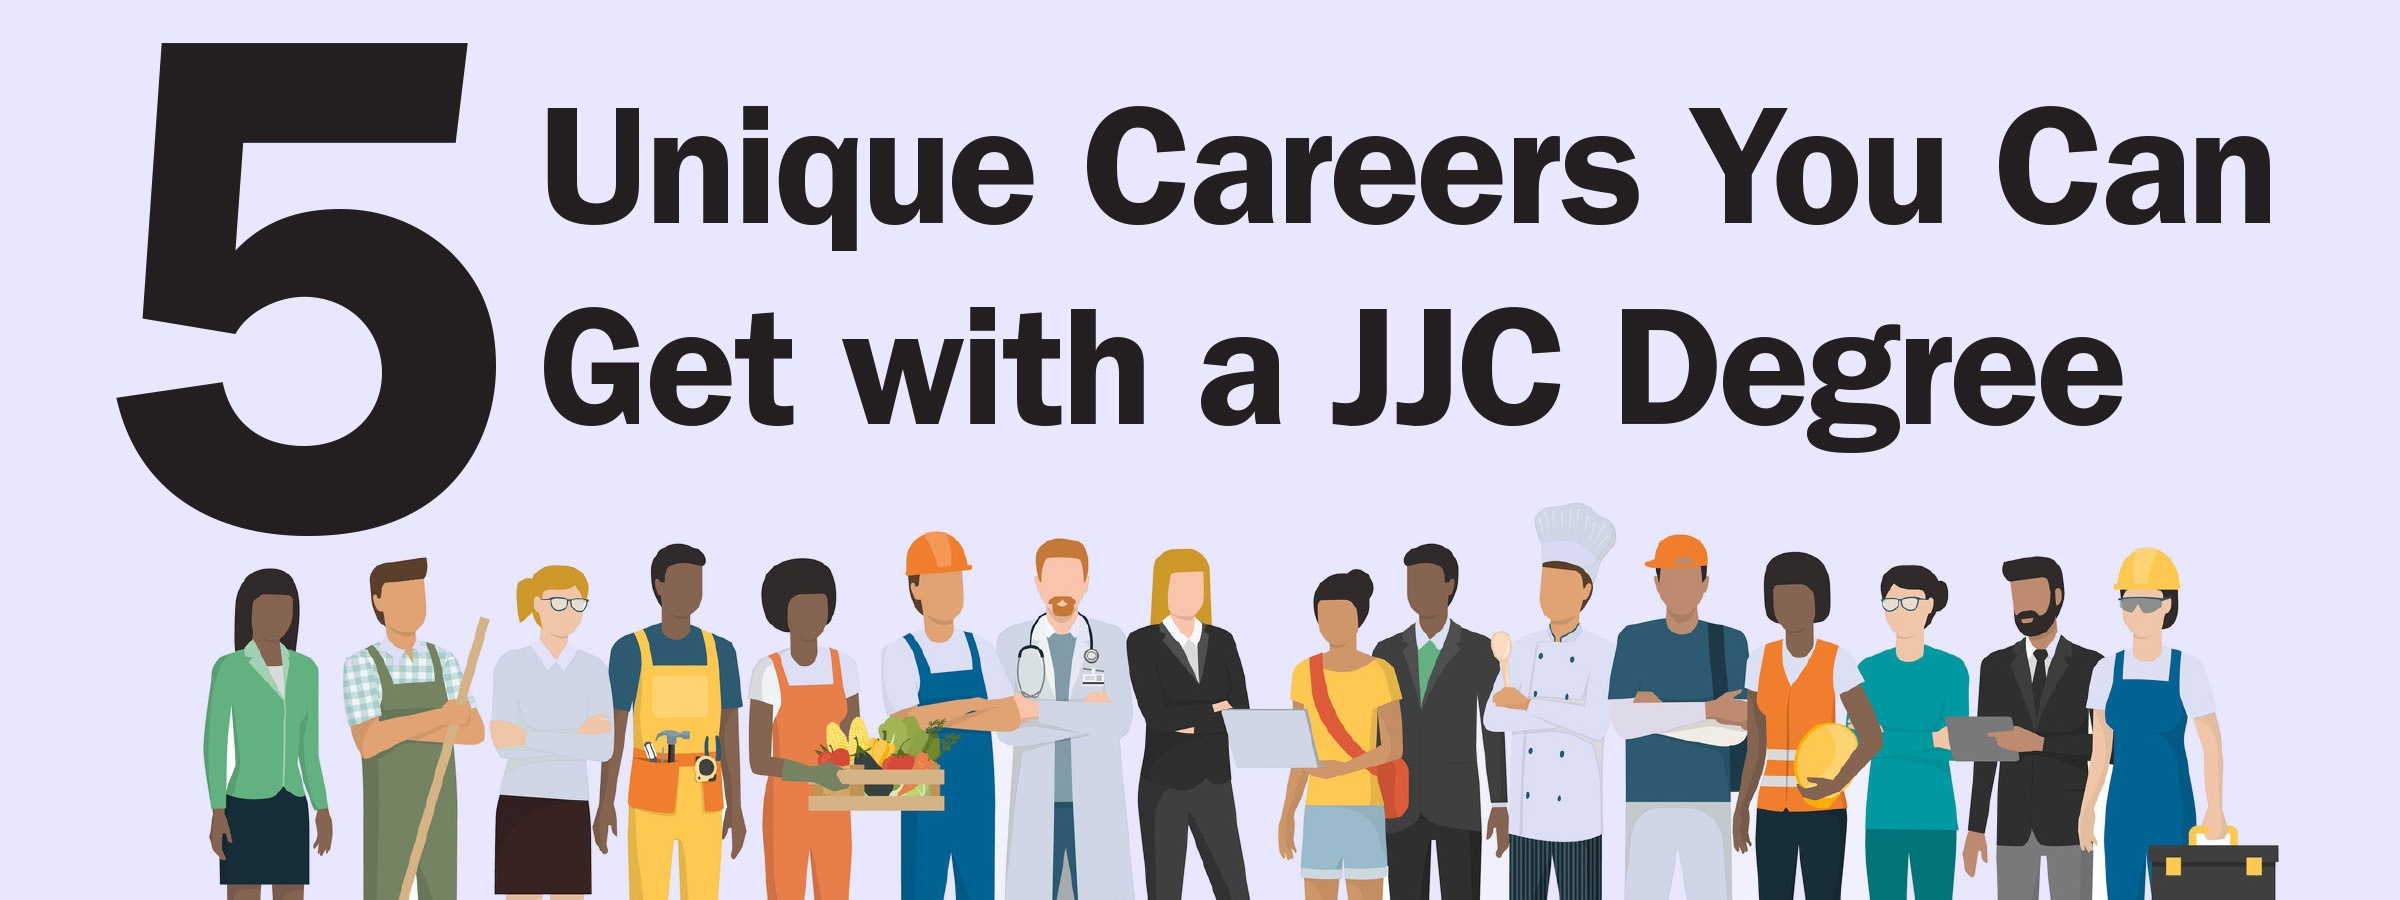 joliet junior college 5 unique careers you can get with a jjc degree